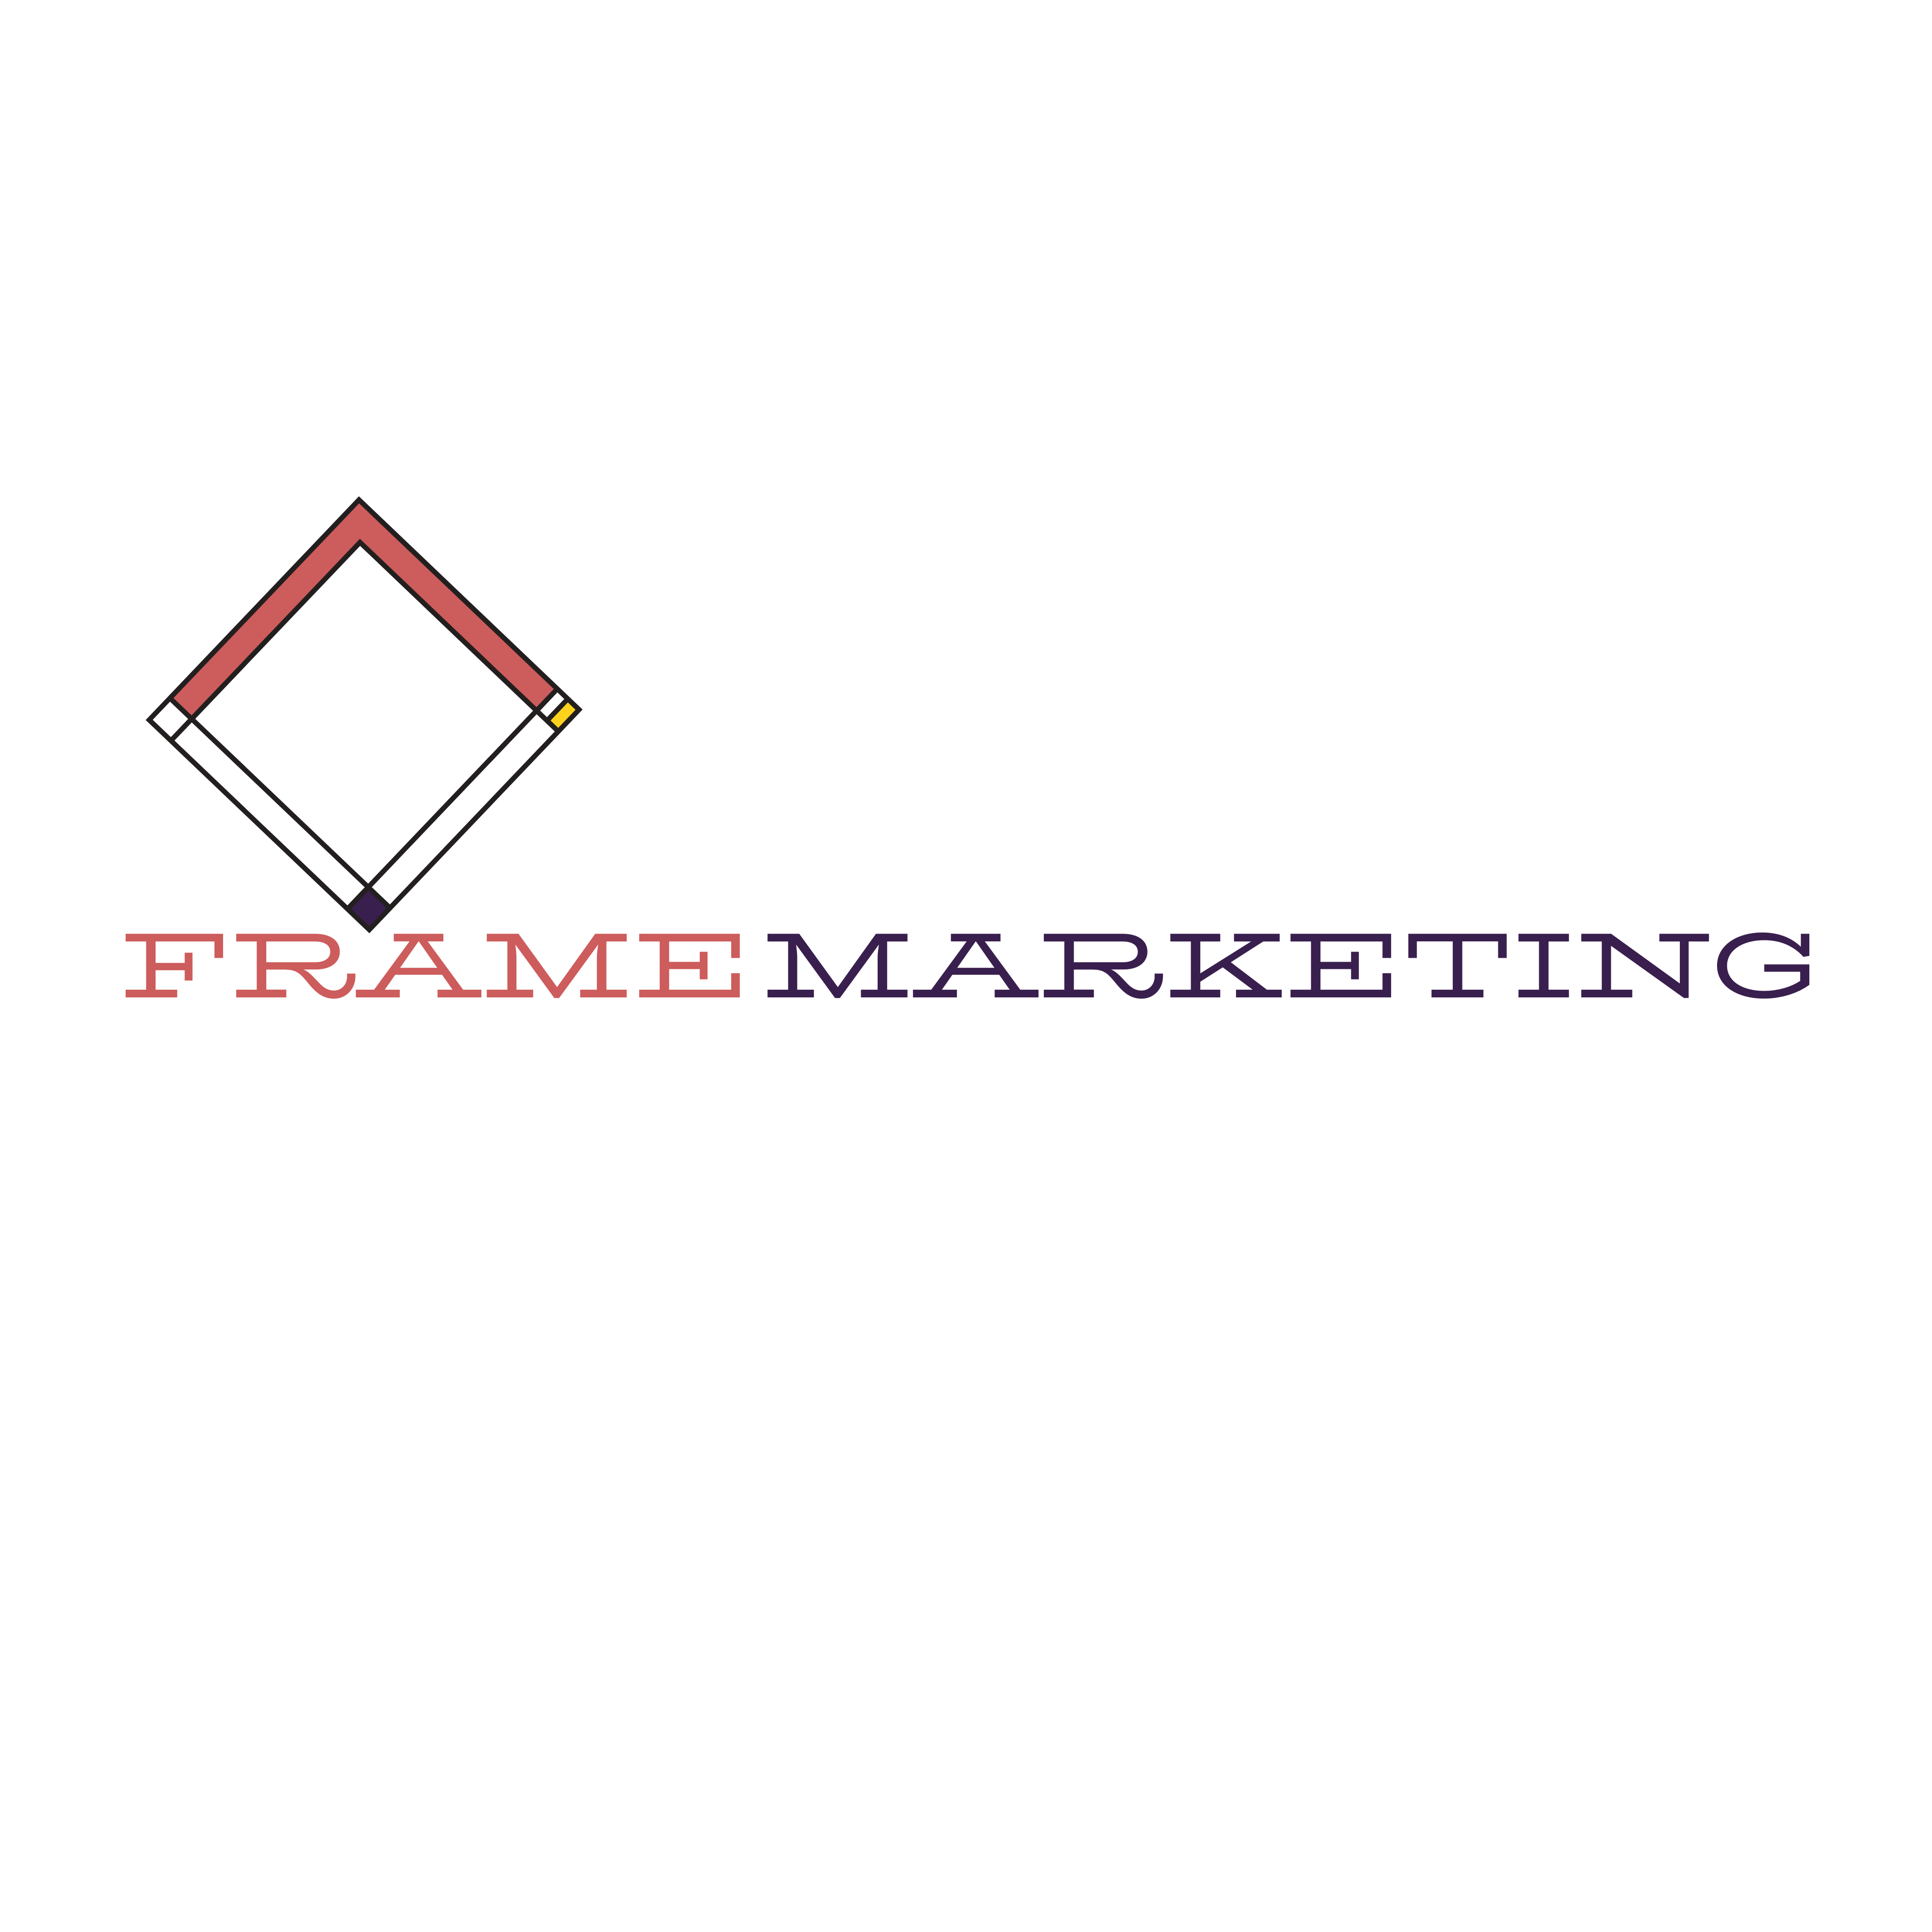 Frame Marketing